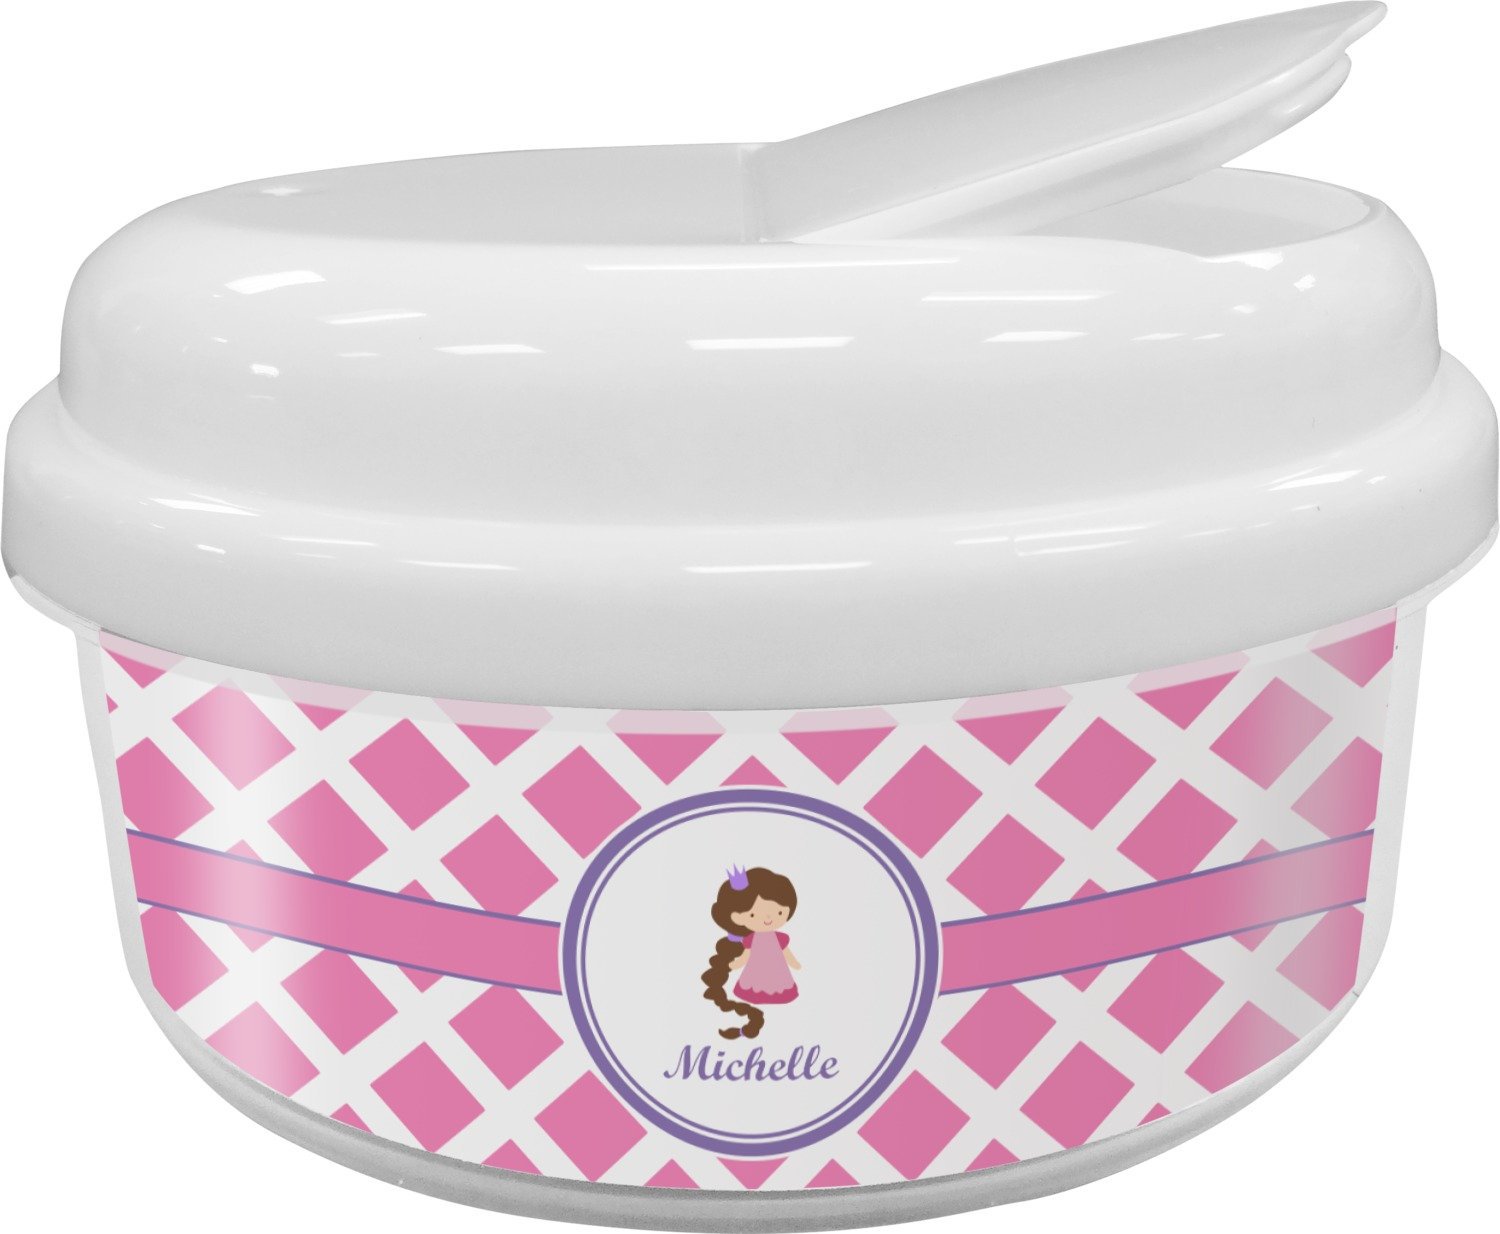 Diamond Print wPrincess Snack Container Personalized YouCustomizeIt